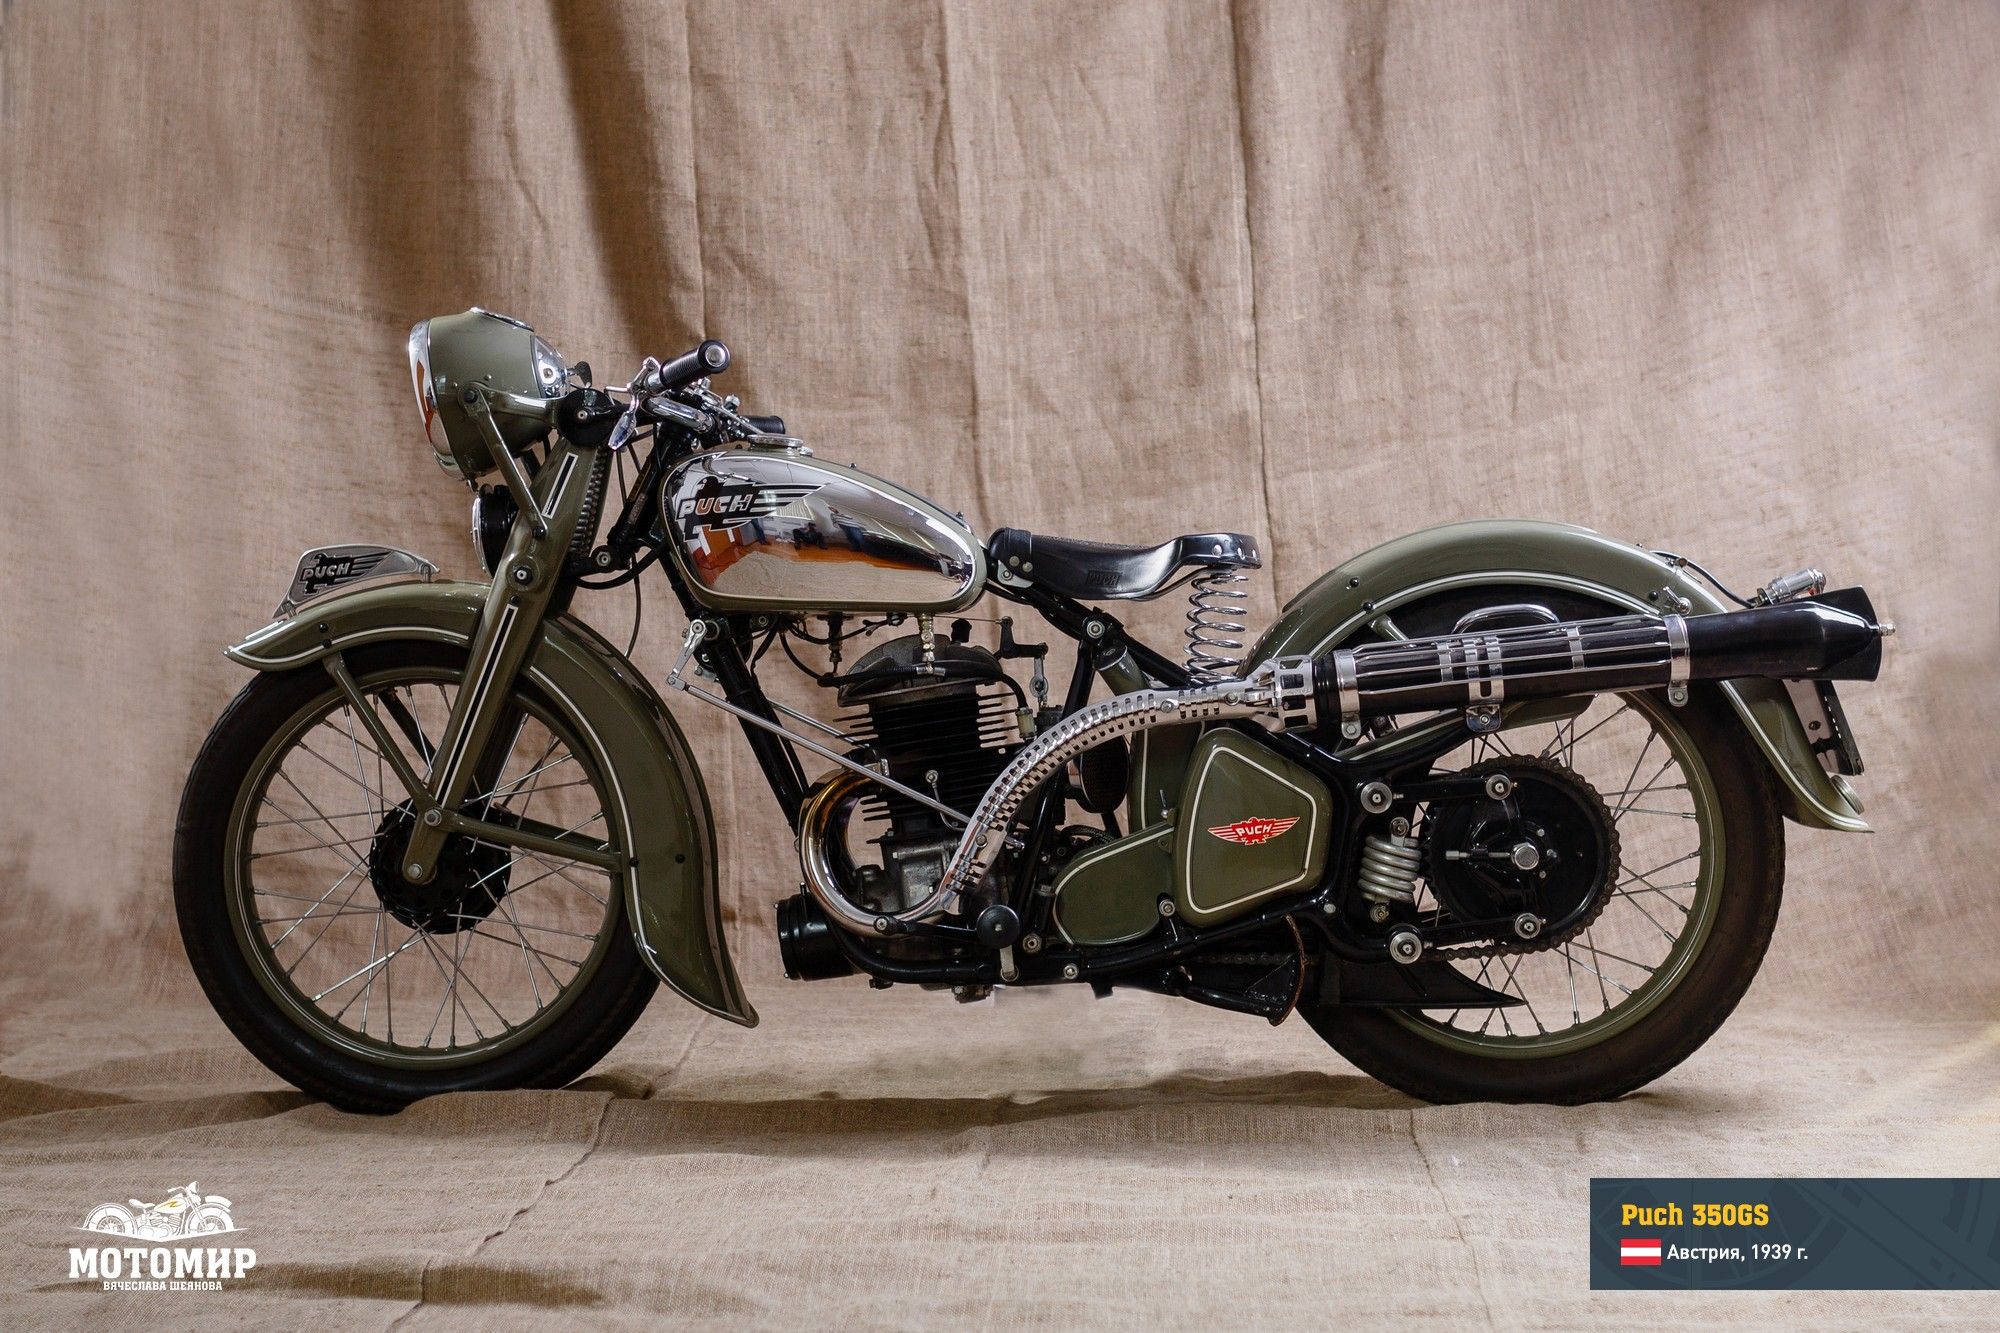 puch-350gs-201601-web-05